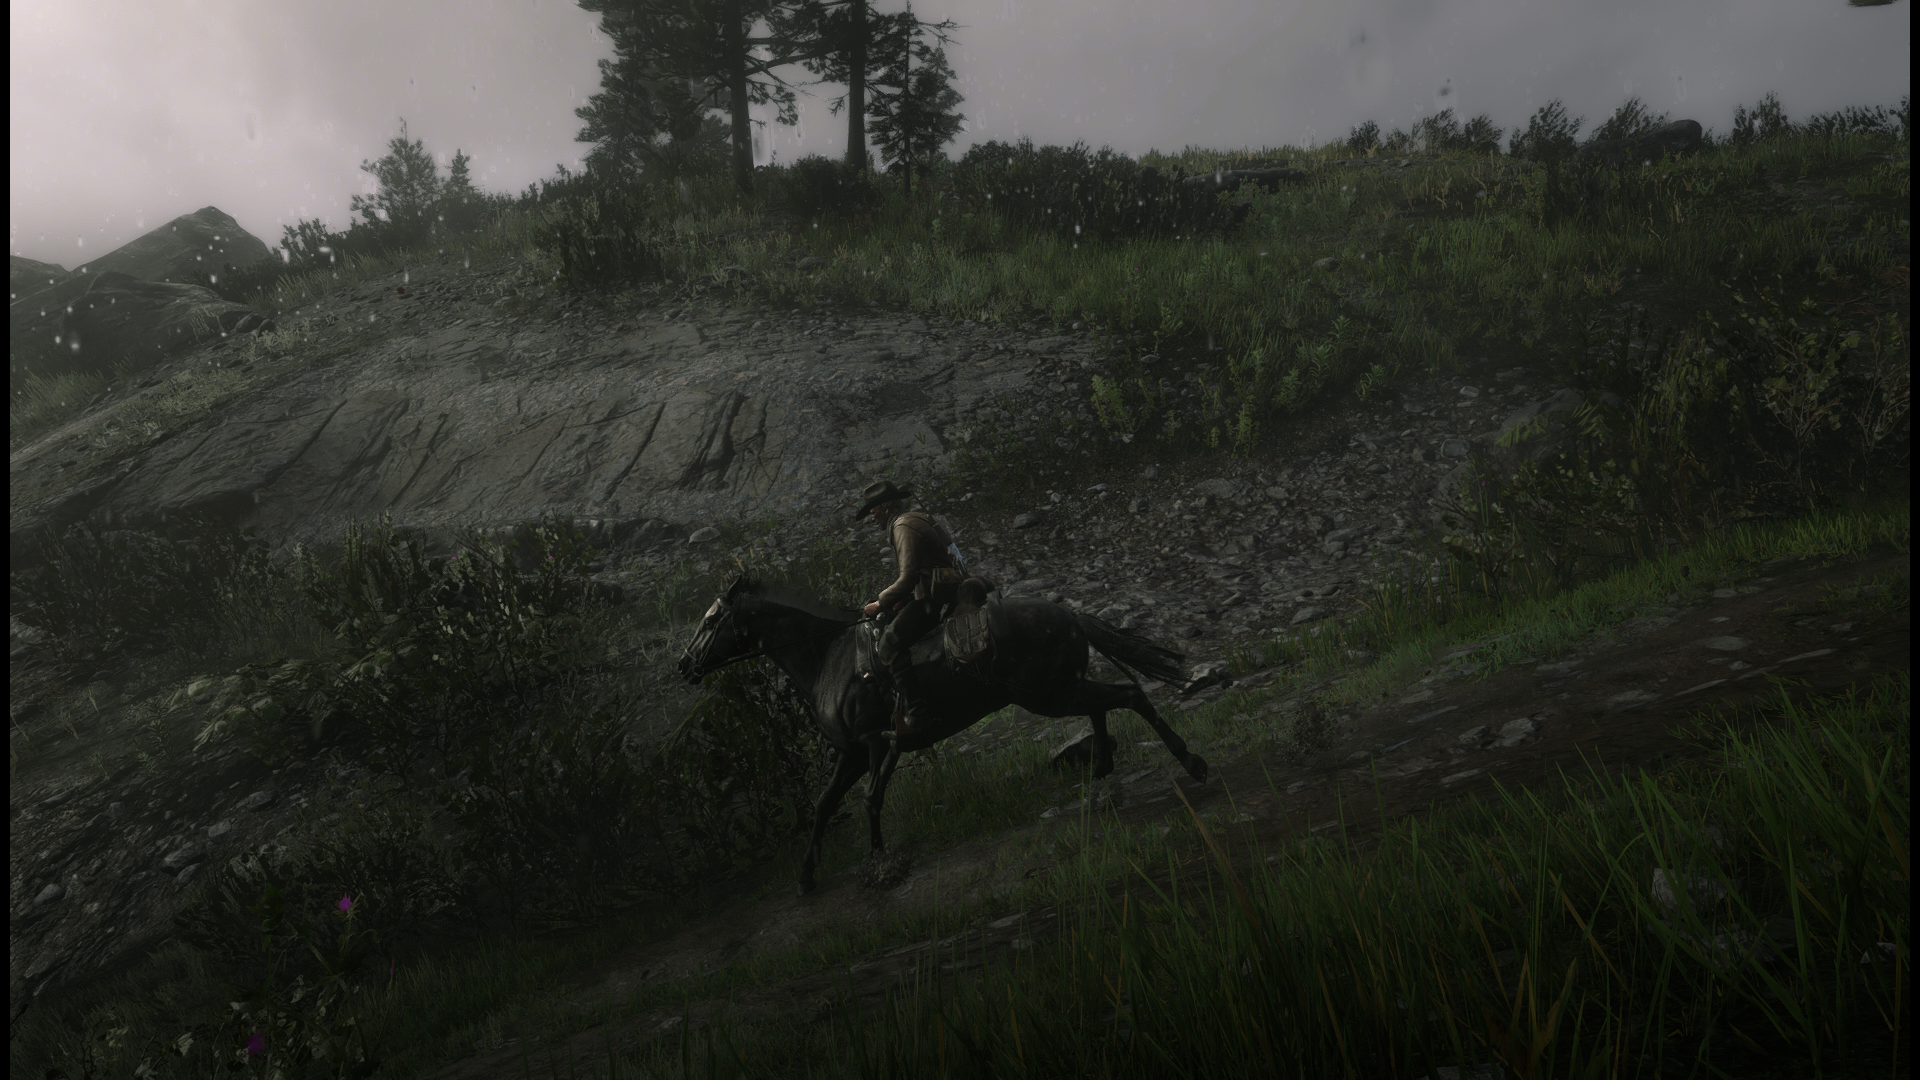 Red Dead Redemption II Screenshot 2019.11.10 - 18.52.39.48 Thumbnail.png - Red Dead Redemption 2